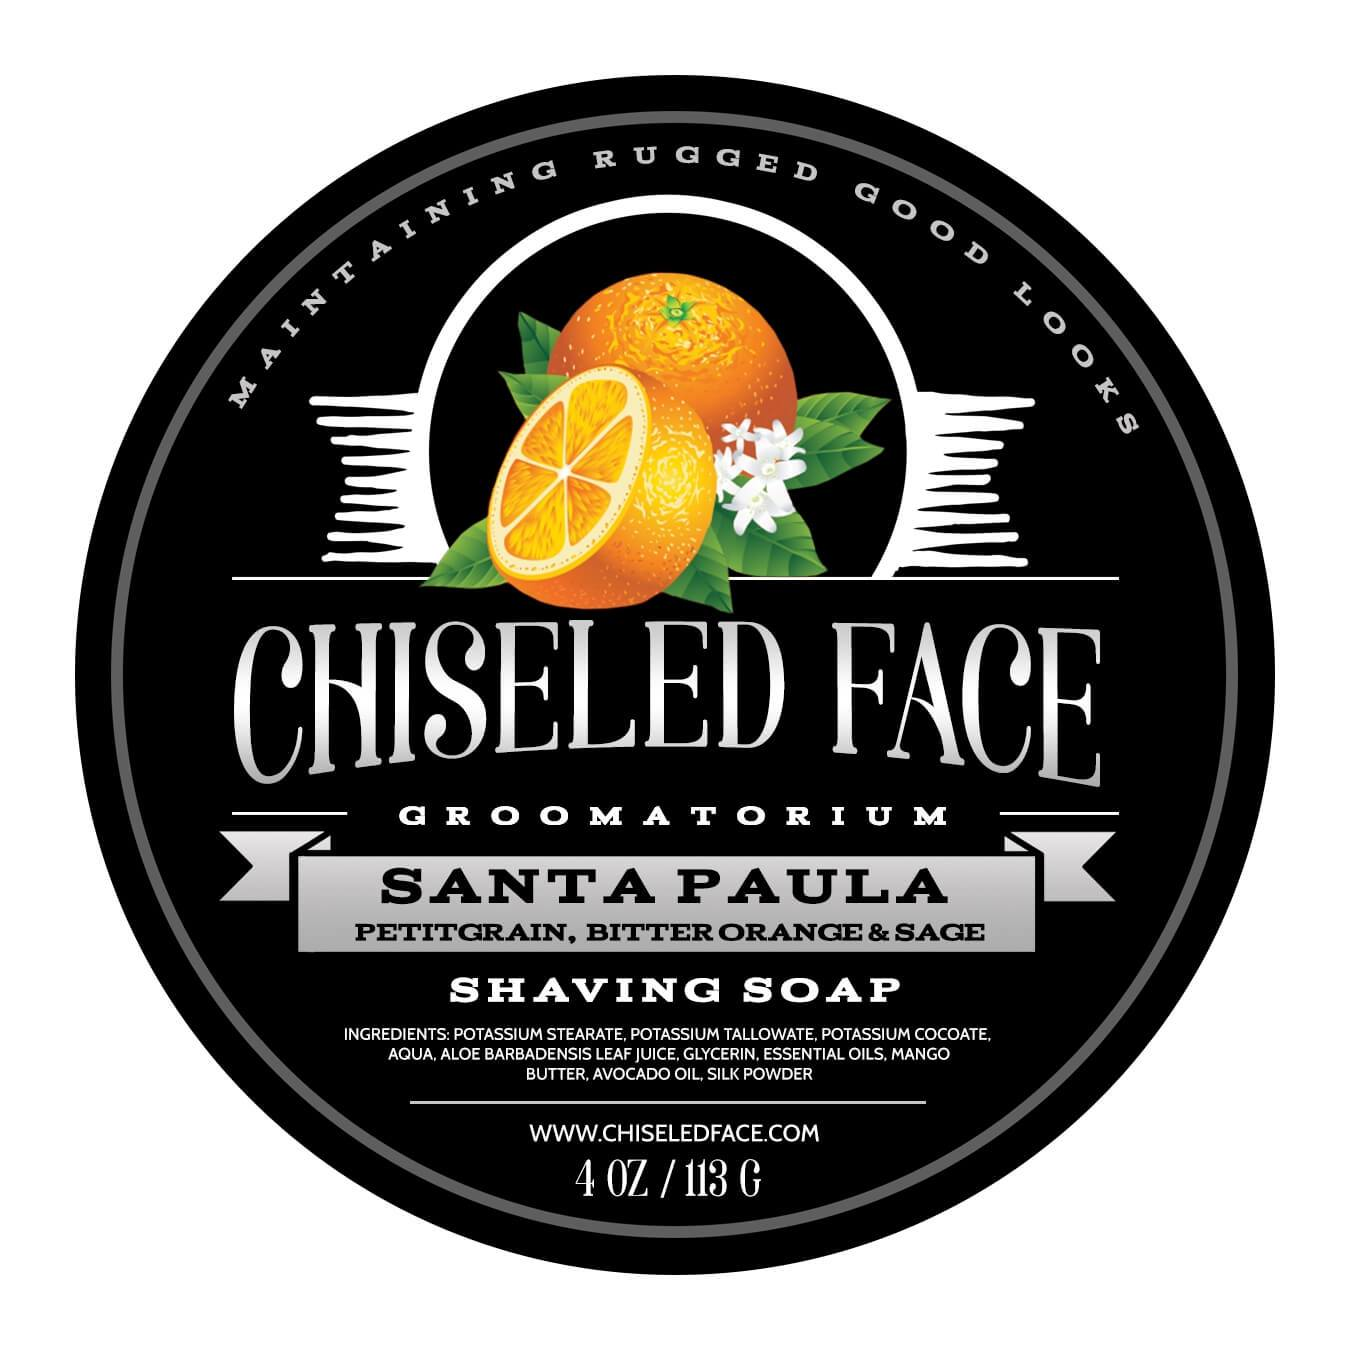 Chiseled Face - Santa Paula - Soap image